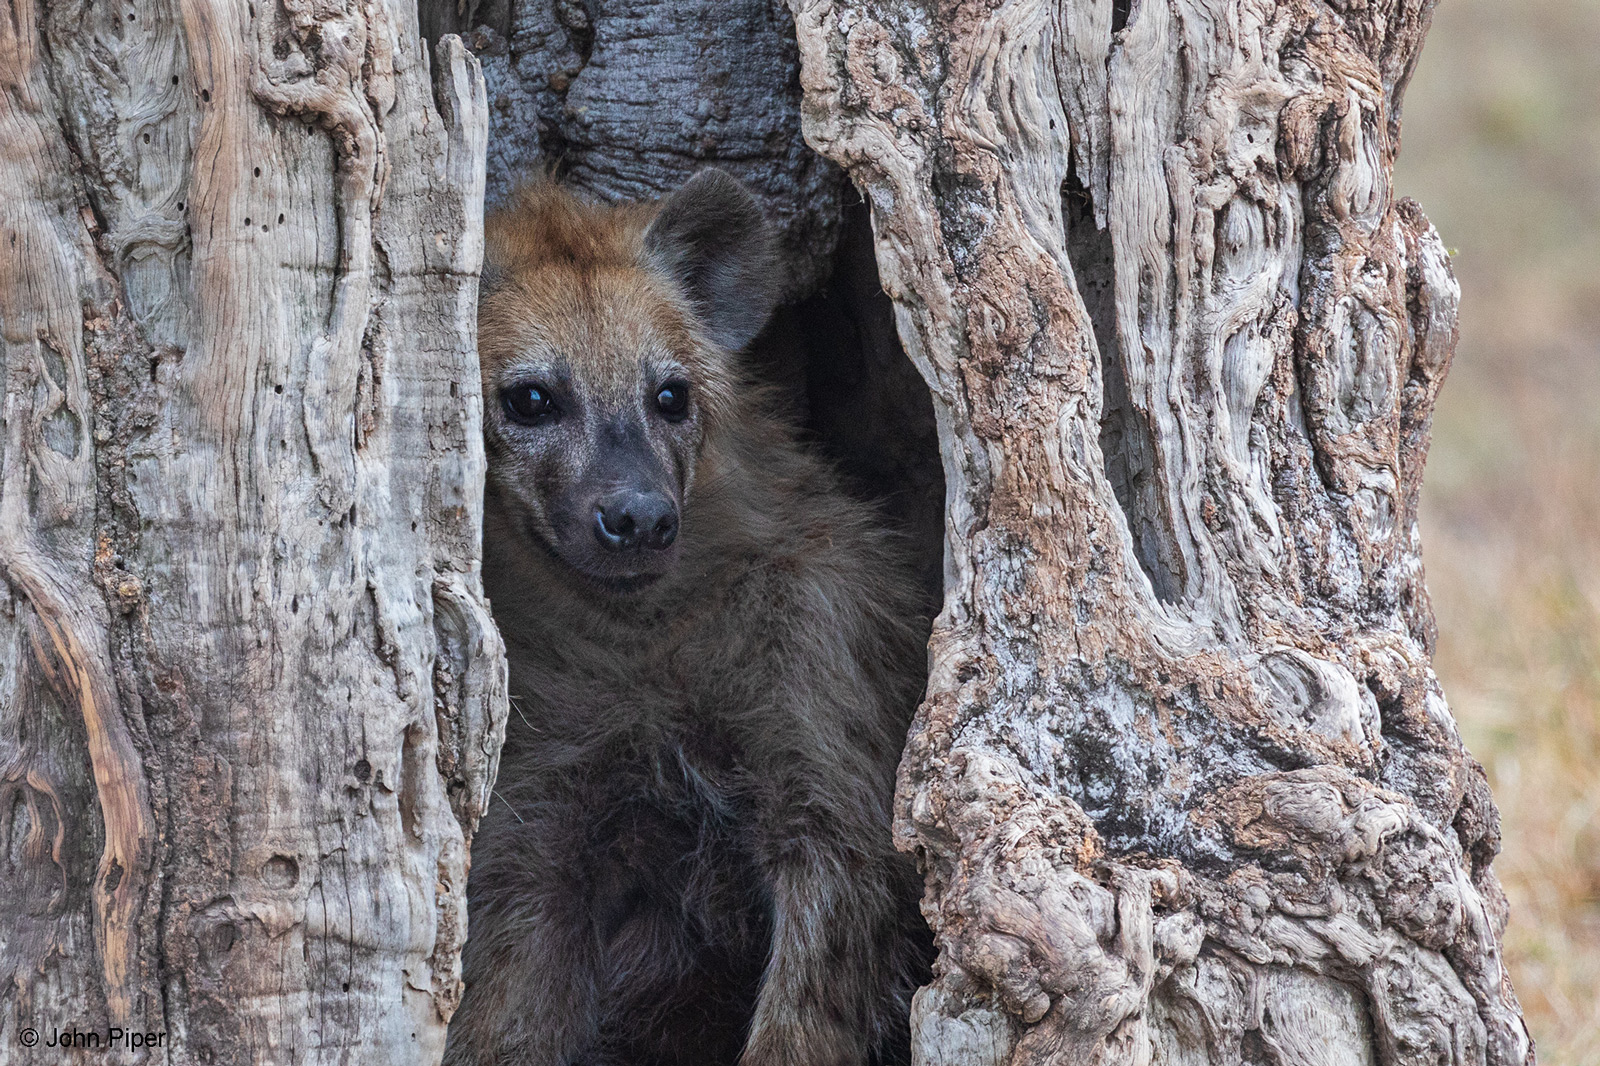 A spotted hyena takes cover inside the hollow trunk of a large tree. Maasai Mara National Reserve, Kenya © John Piper